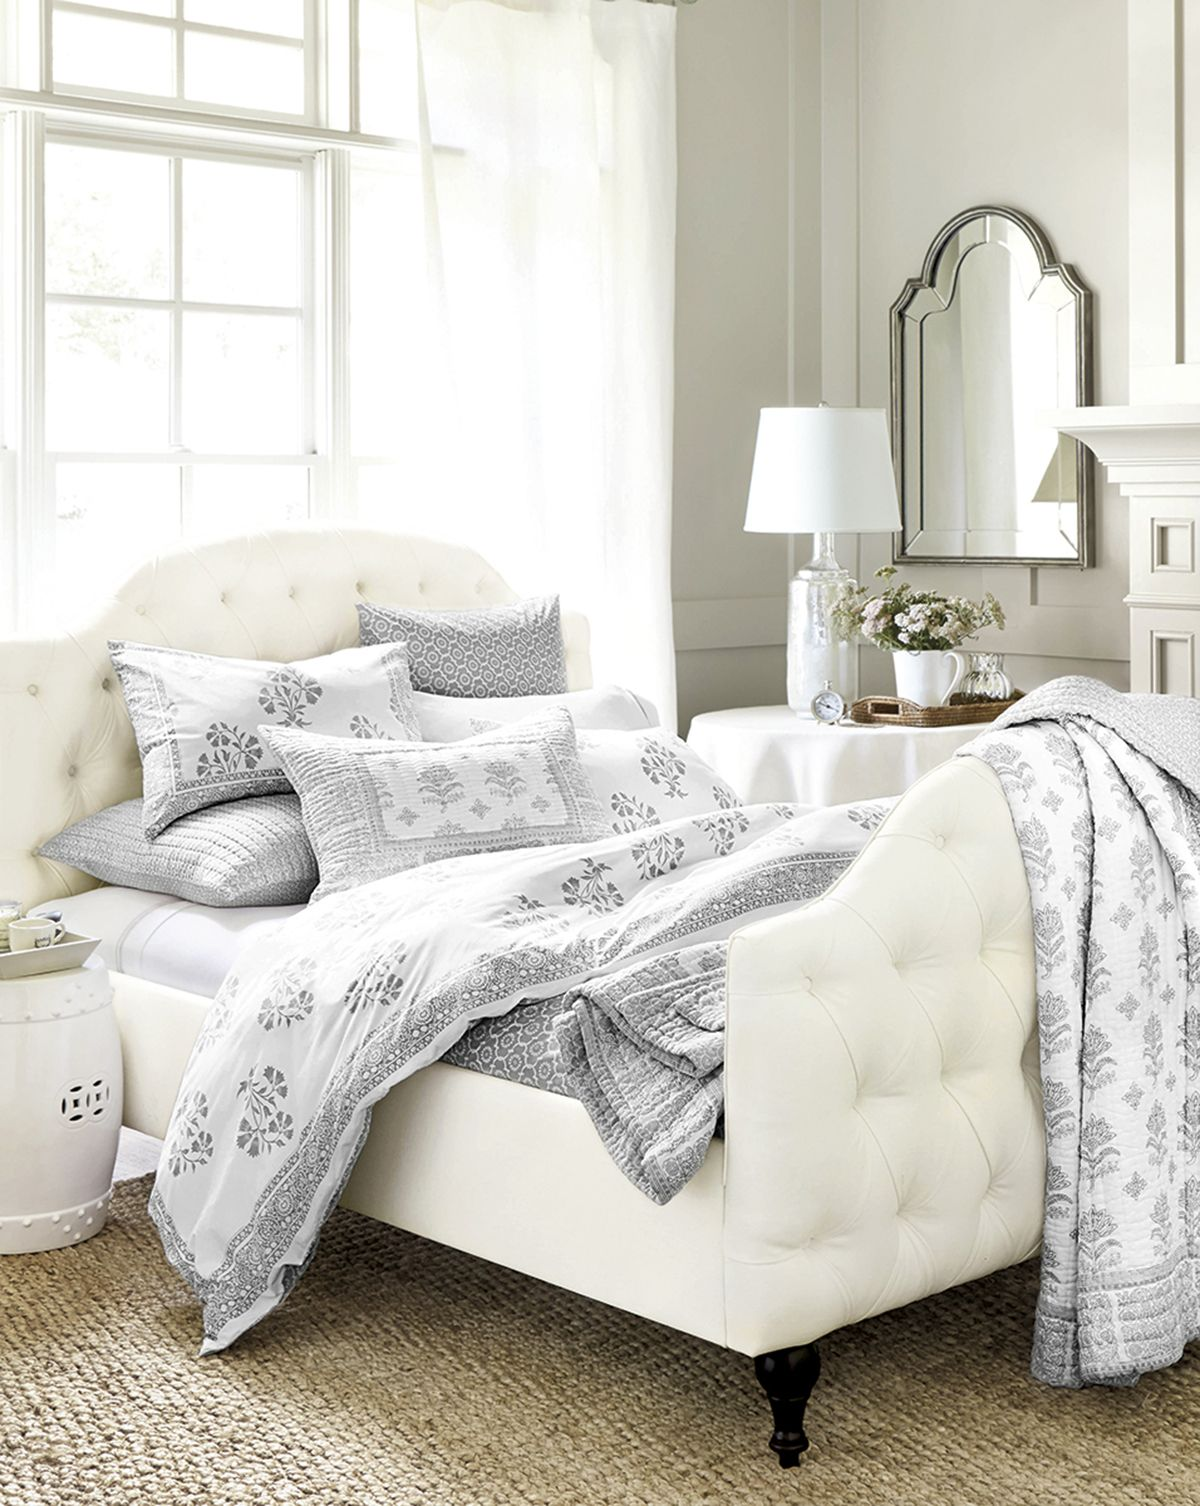 lavender and white bedroom from ballard designs  guest room  - house beautiful